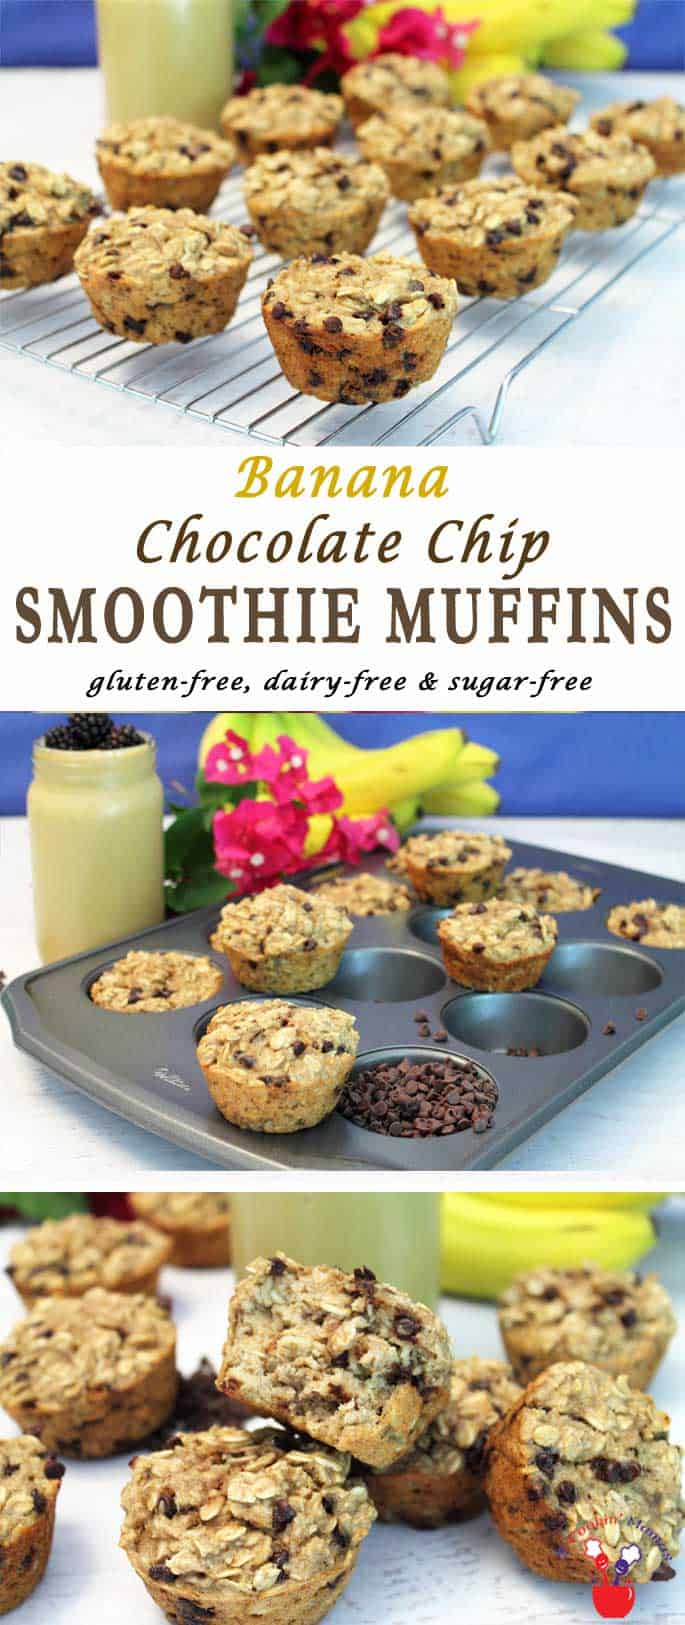 Banana Chocolate Chip Smoothie Muffins   2 Cookin Mamas Sweet Banana Chocolate Chip Smoothie Muffins are like eating a healthy smoothie minus the glass. They're easy to make & sugar, egg, gluten & dairy-free too!